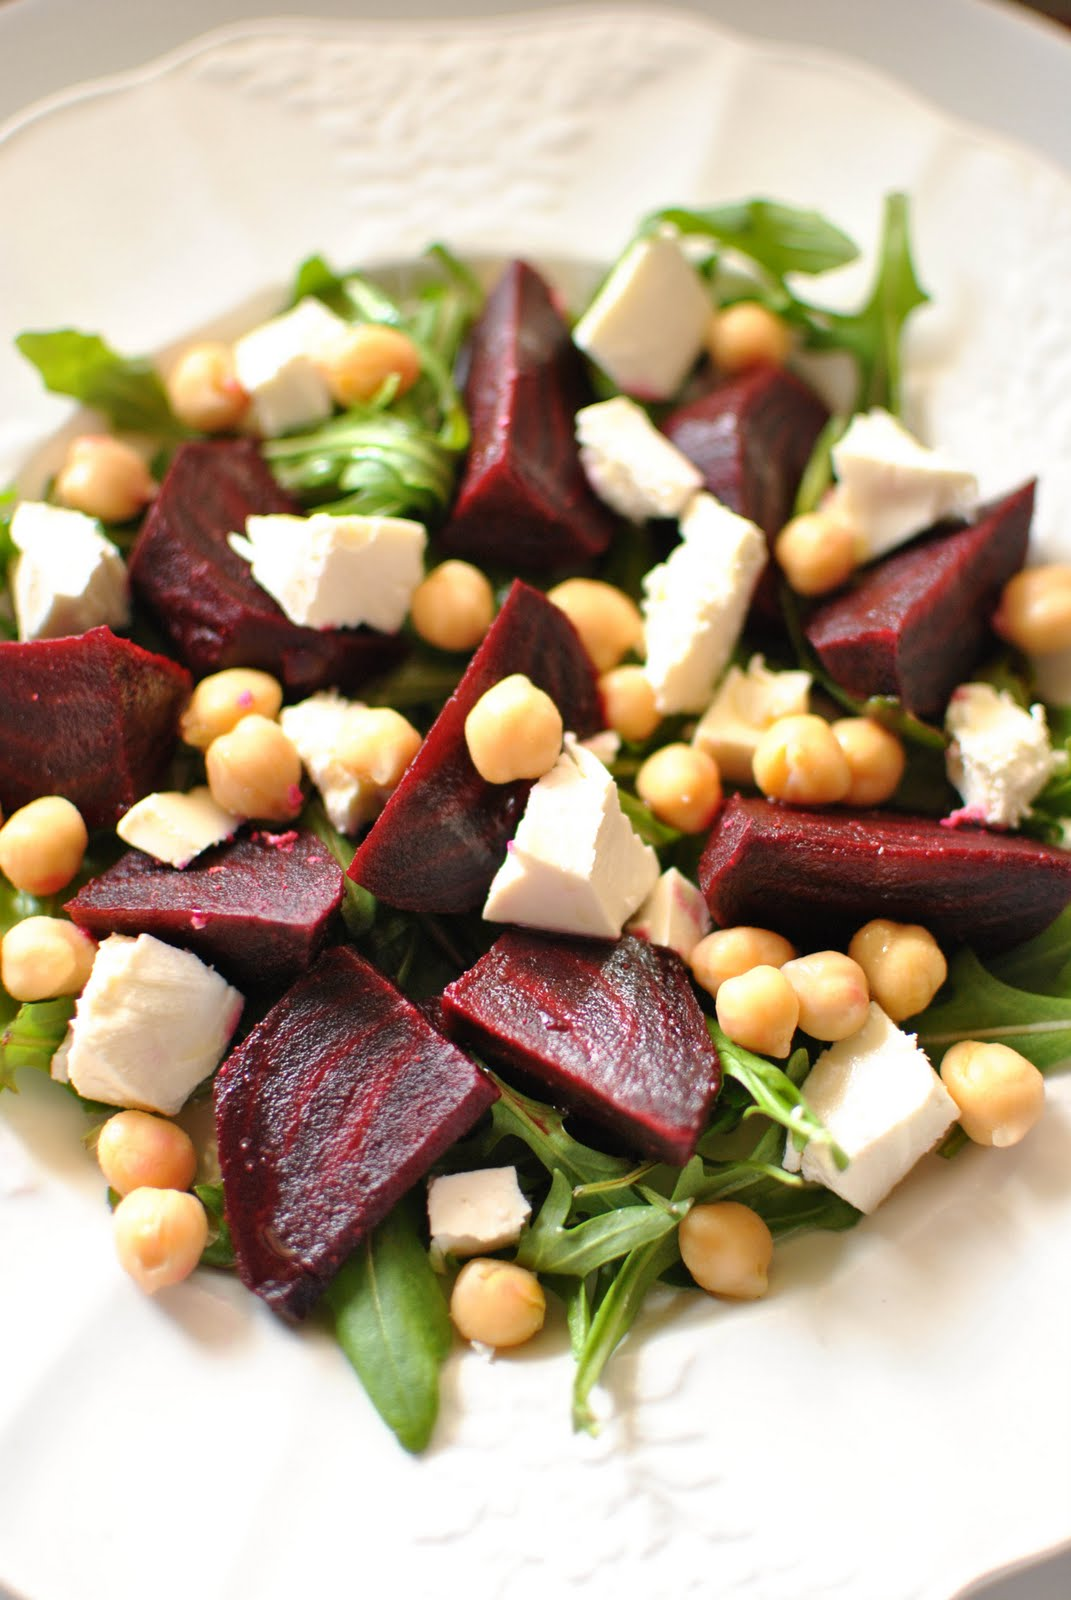 Scandi Home: Salad of Beets, Chickpeas and Feta